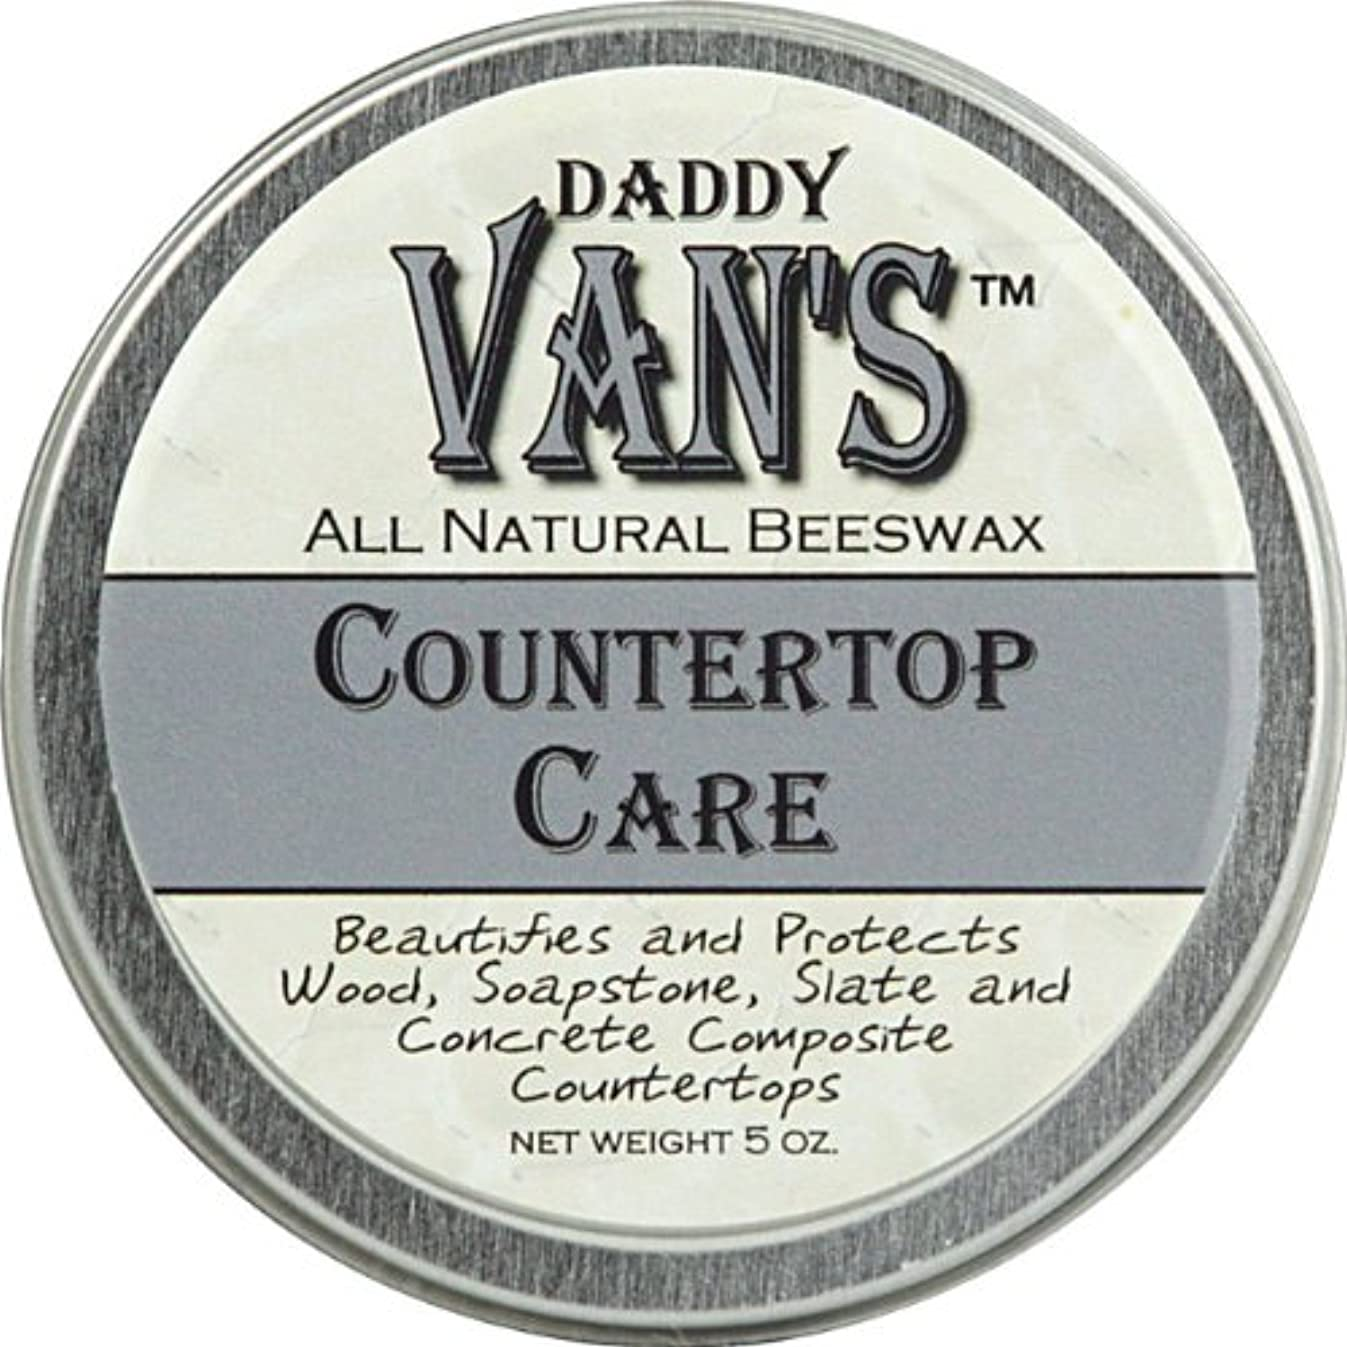 Daddy Van's? All Natural Beeswax Countertop Care for Soapstone, Slate, Concrete Composite and Butcher Block Counter Tops - Food Safe, Chemical-Free and Non-Toxic - A Little Goes a Long Way with this 5 Ounce Tin